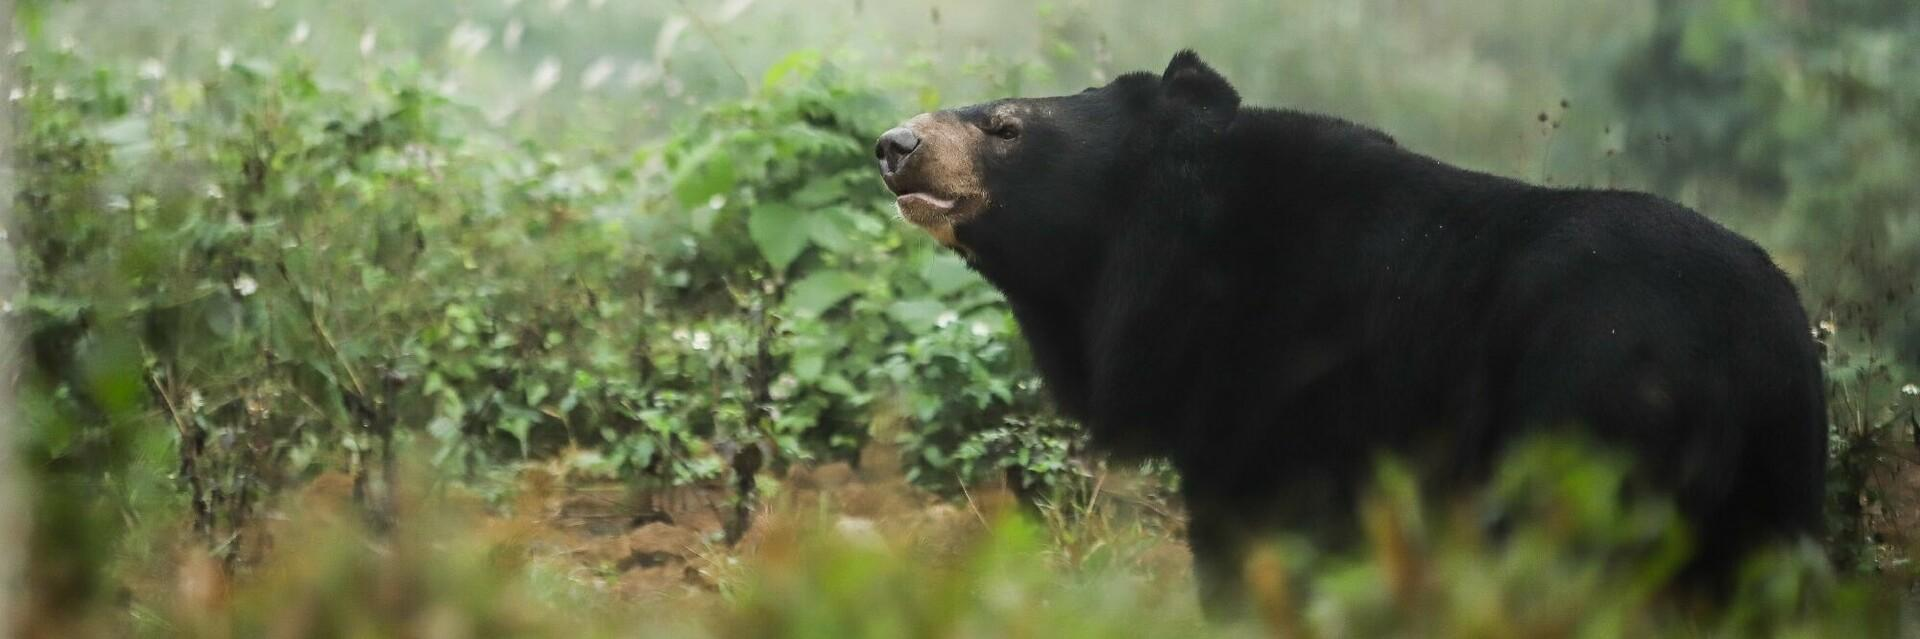 Bear at BEAR SANCTUARY Ninh Binh